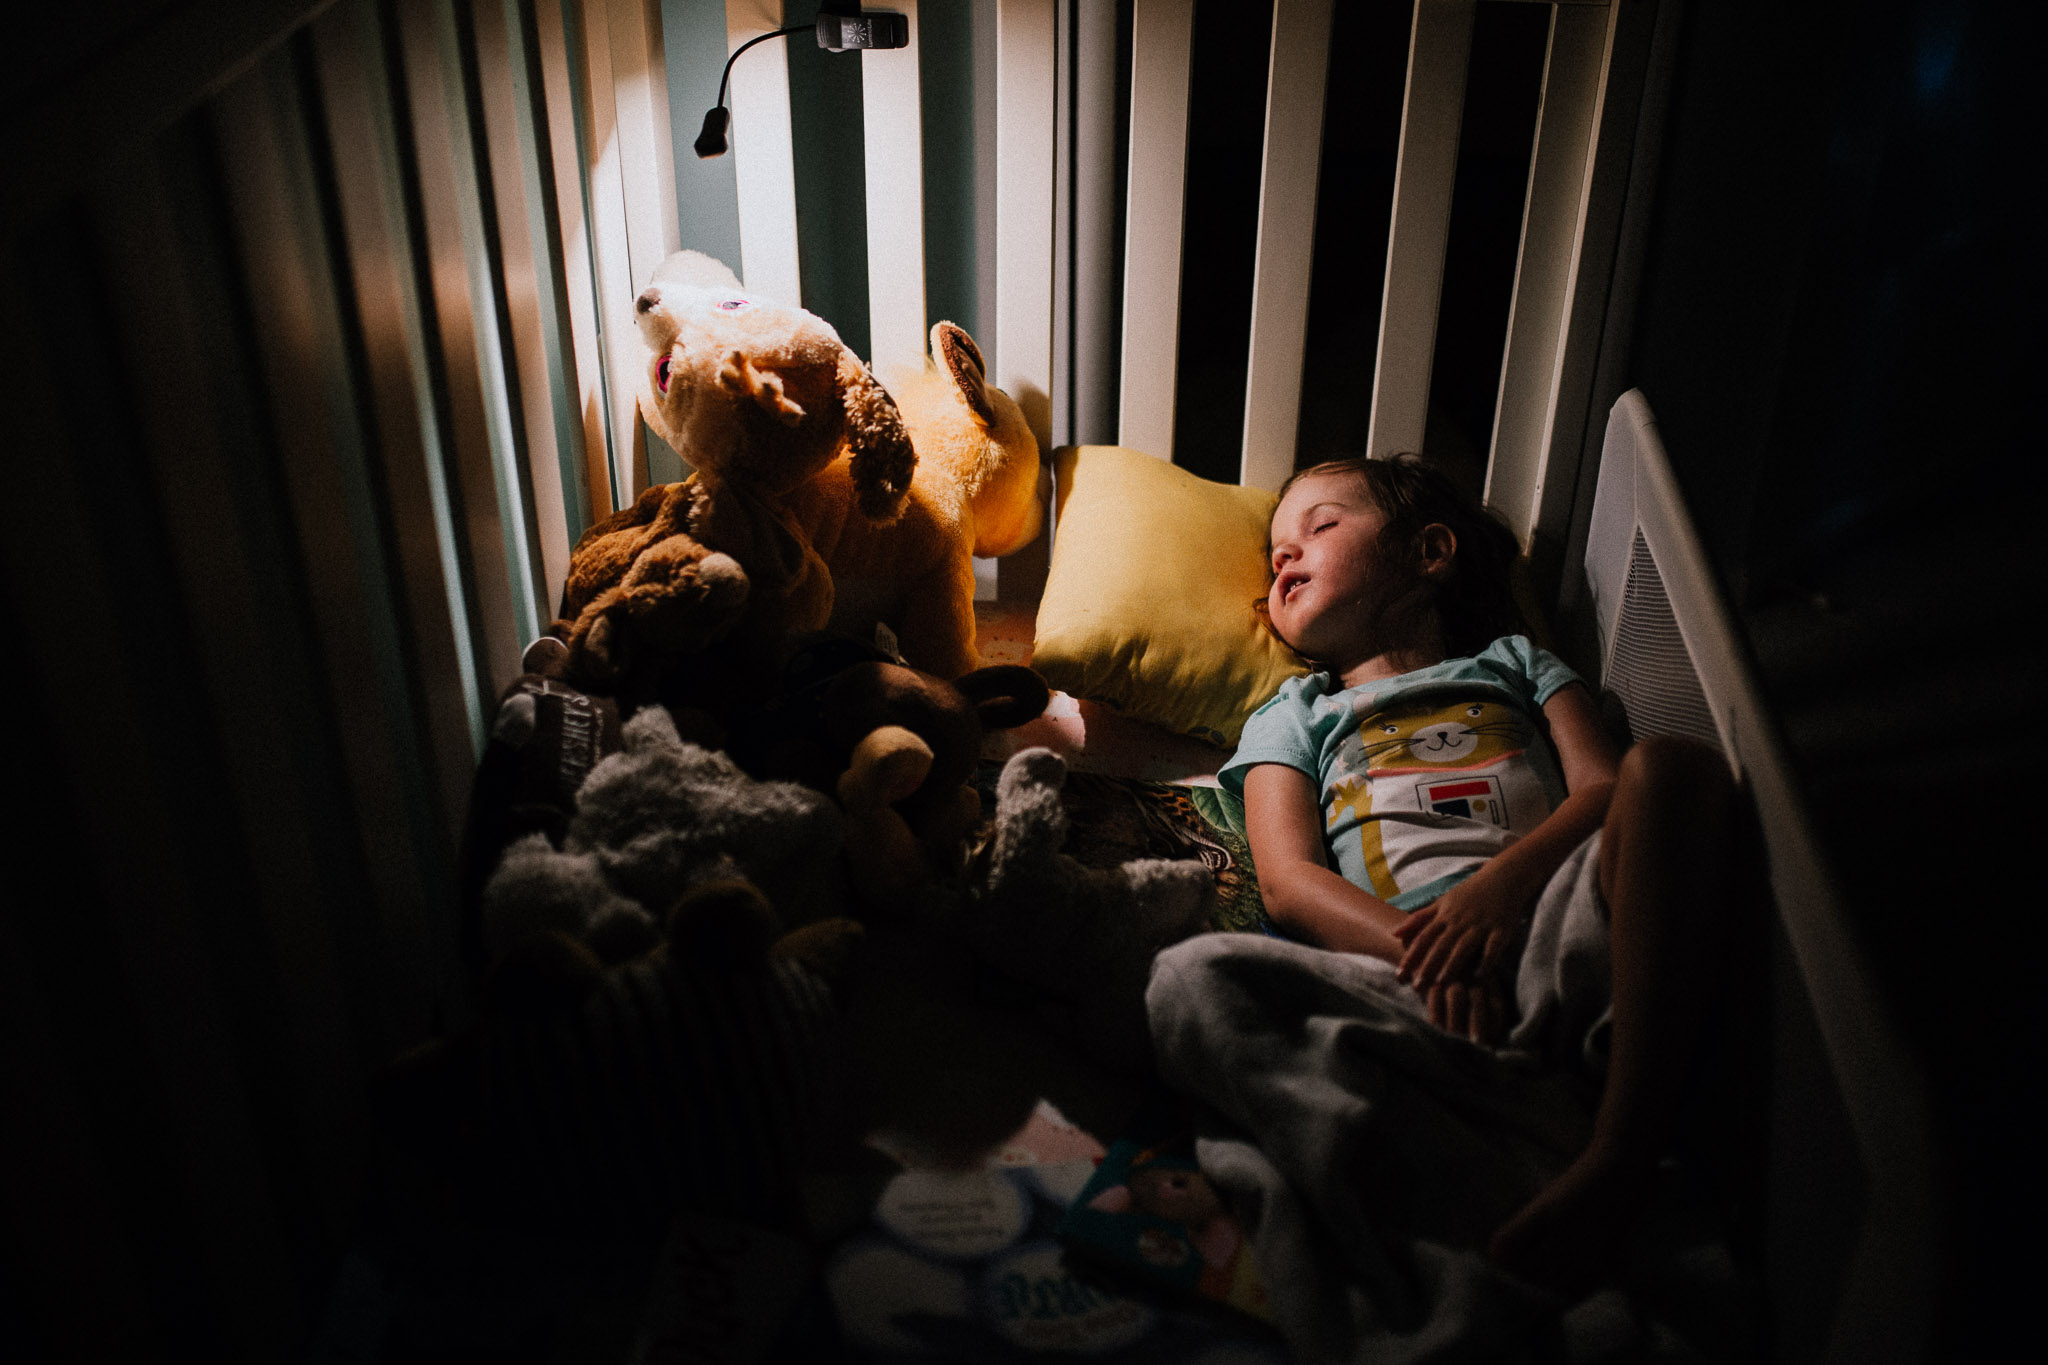 Young girl asleep in her bed next to a pile of stuffed animals and books